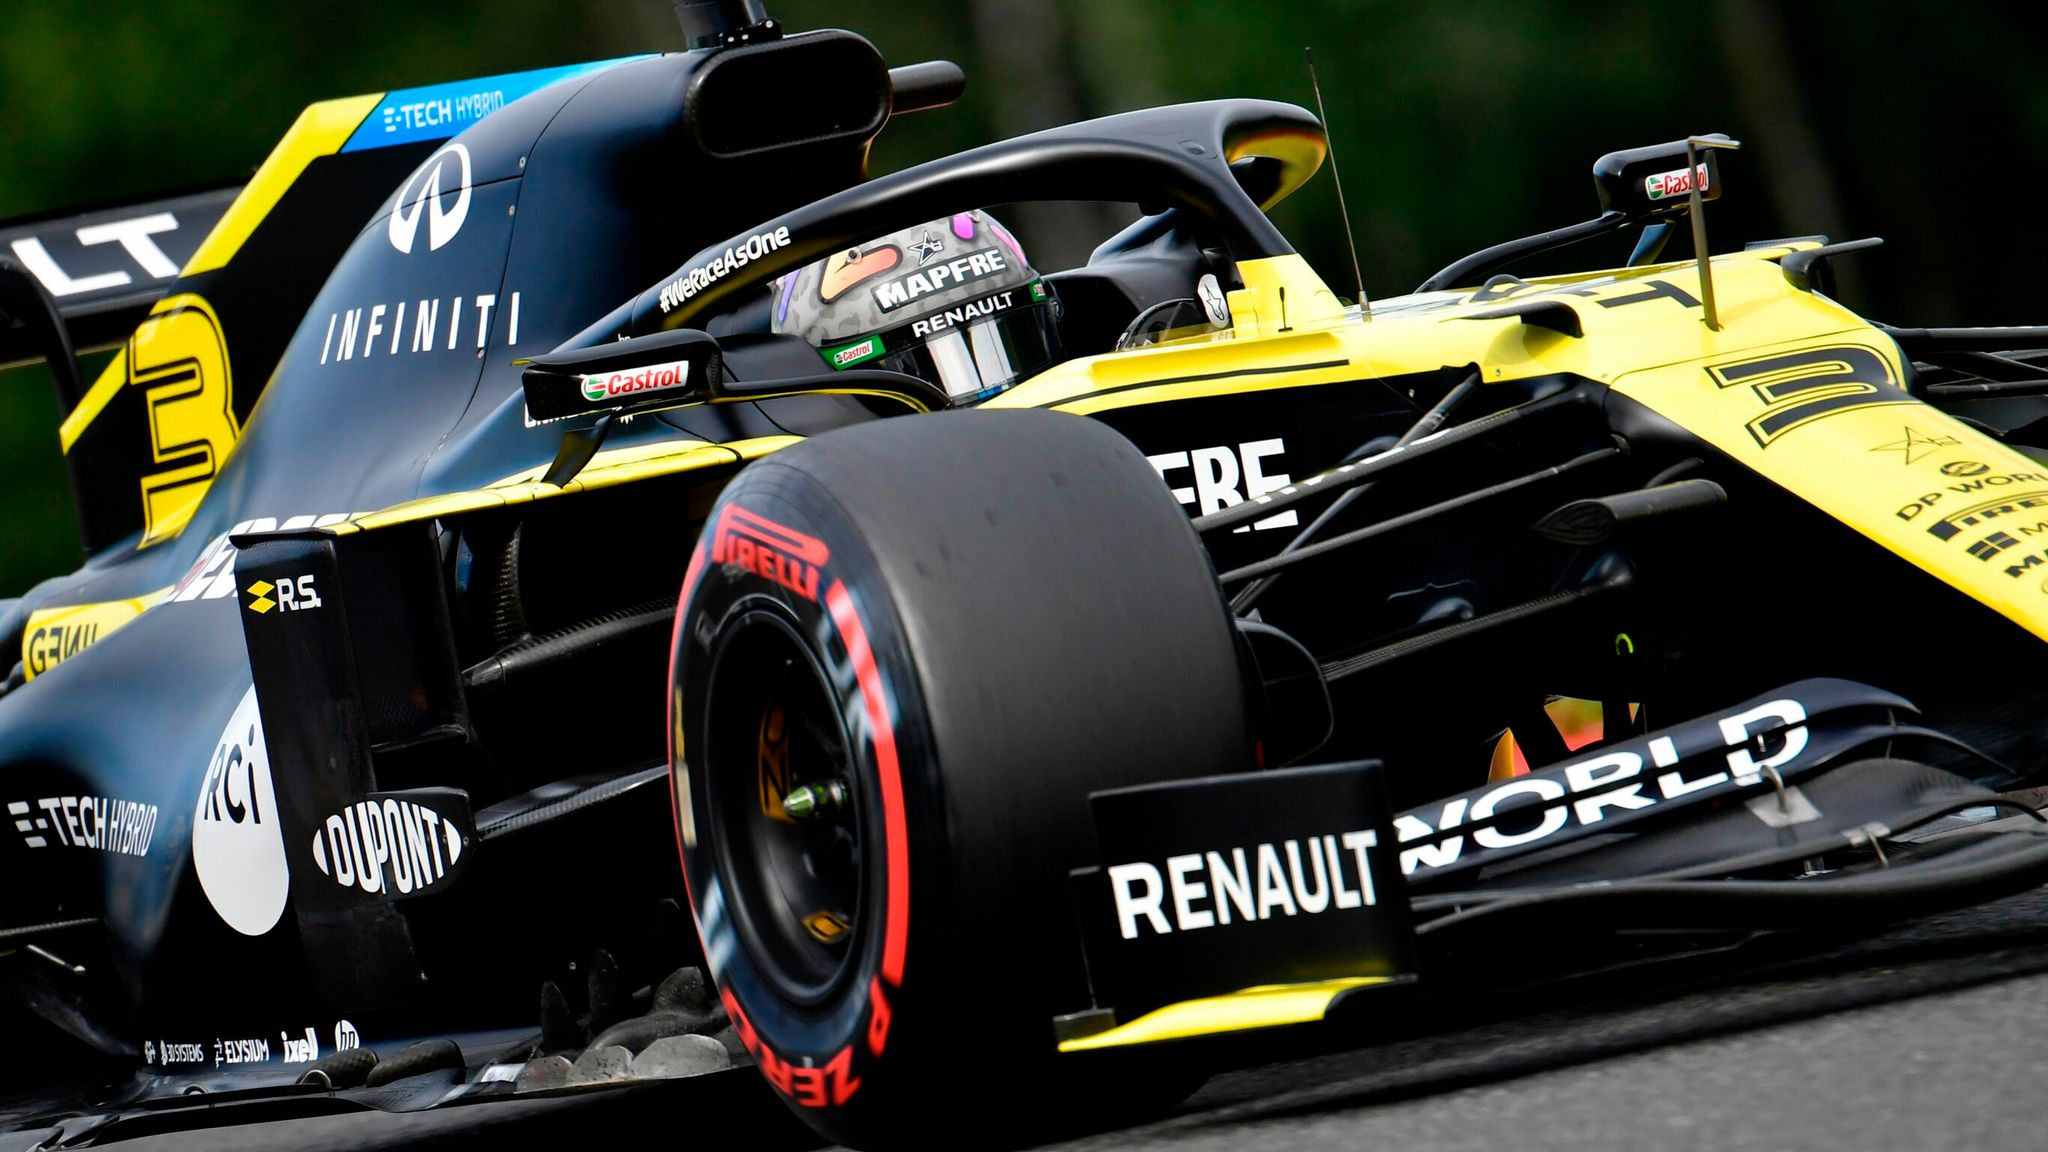 Renault To Be Known As Alpine F1 Team From 2021 Season F1 News